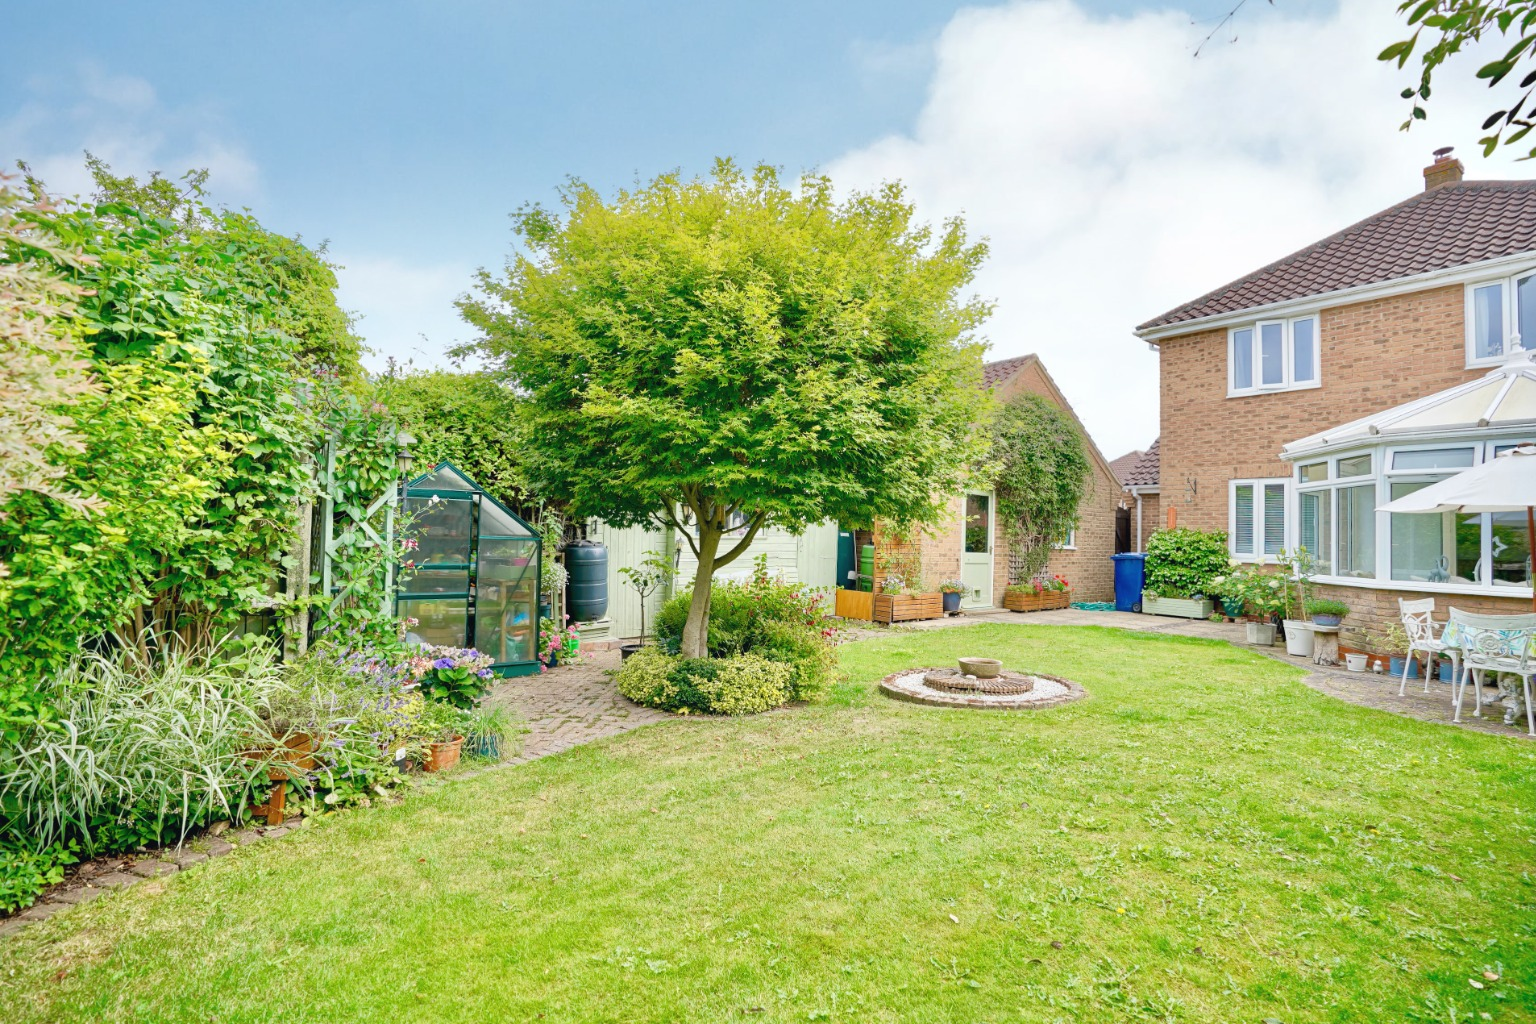 4 bed detached house for sale in Alsyke Close, Huntingdon - Property Image 1